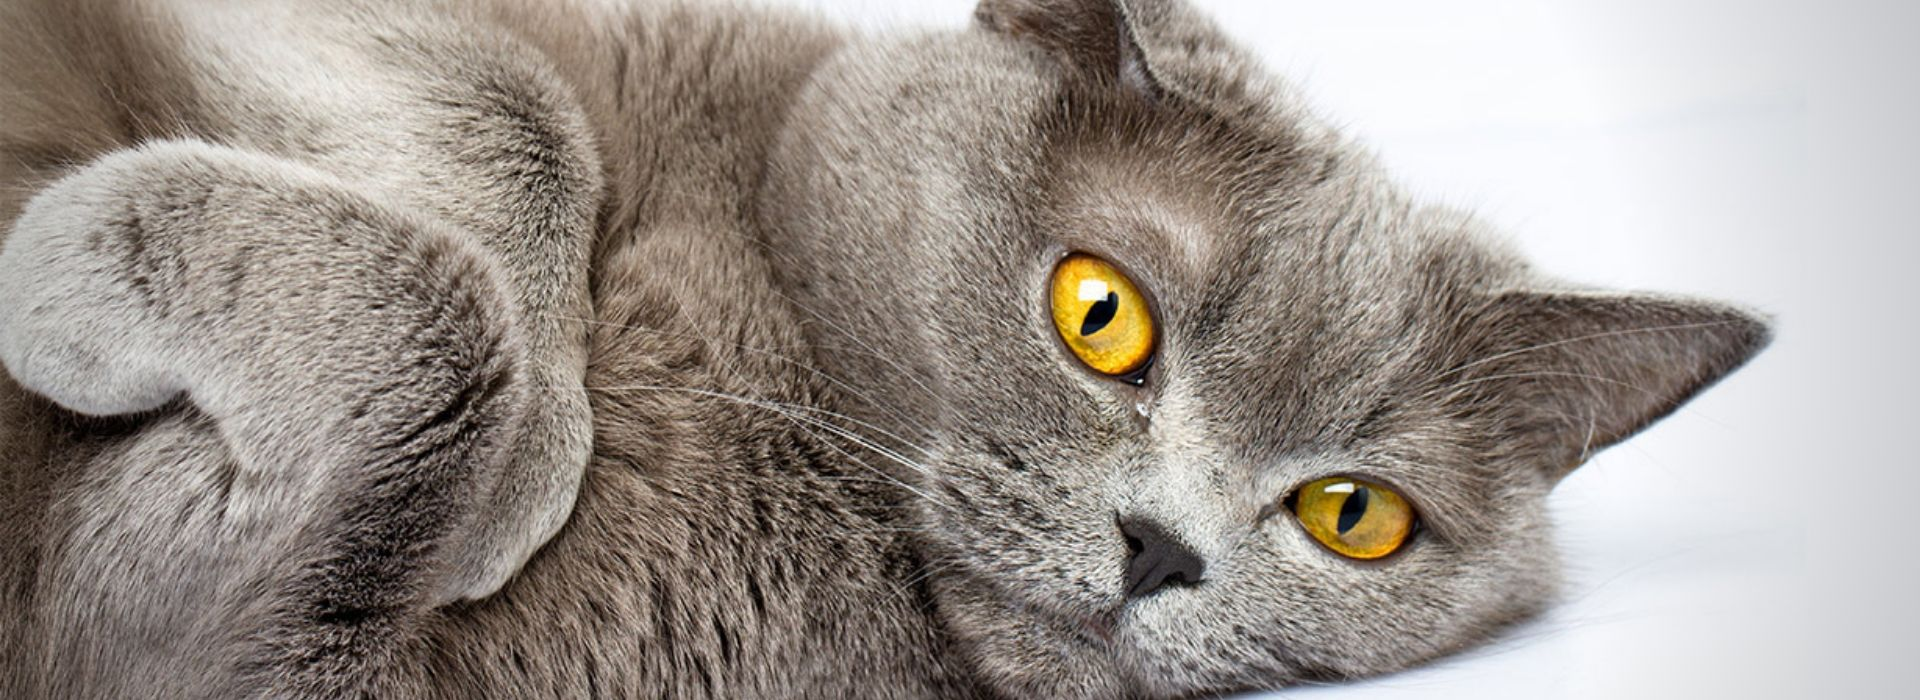 Beau et adorable chat british Shorthair